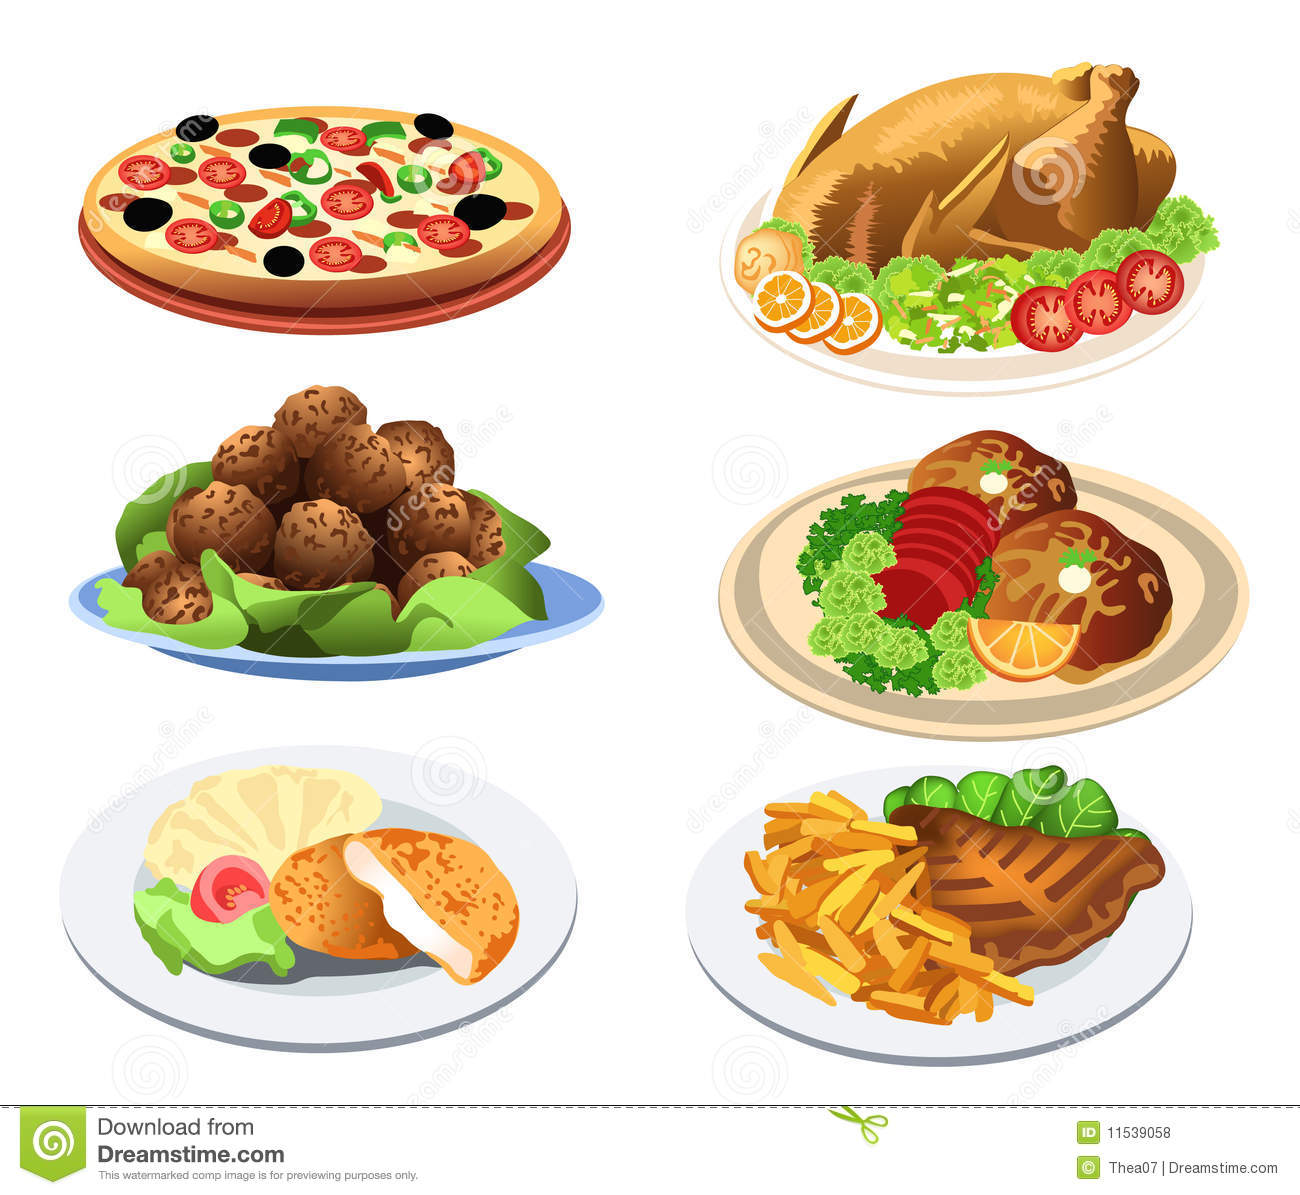 Station . Food dish clipart